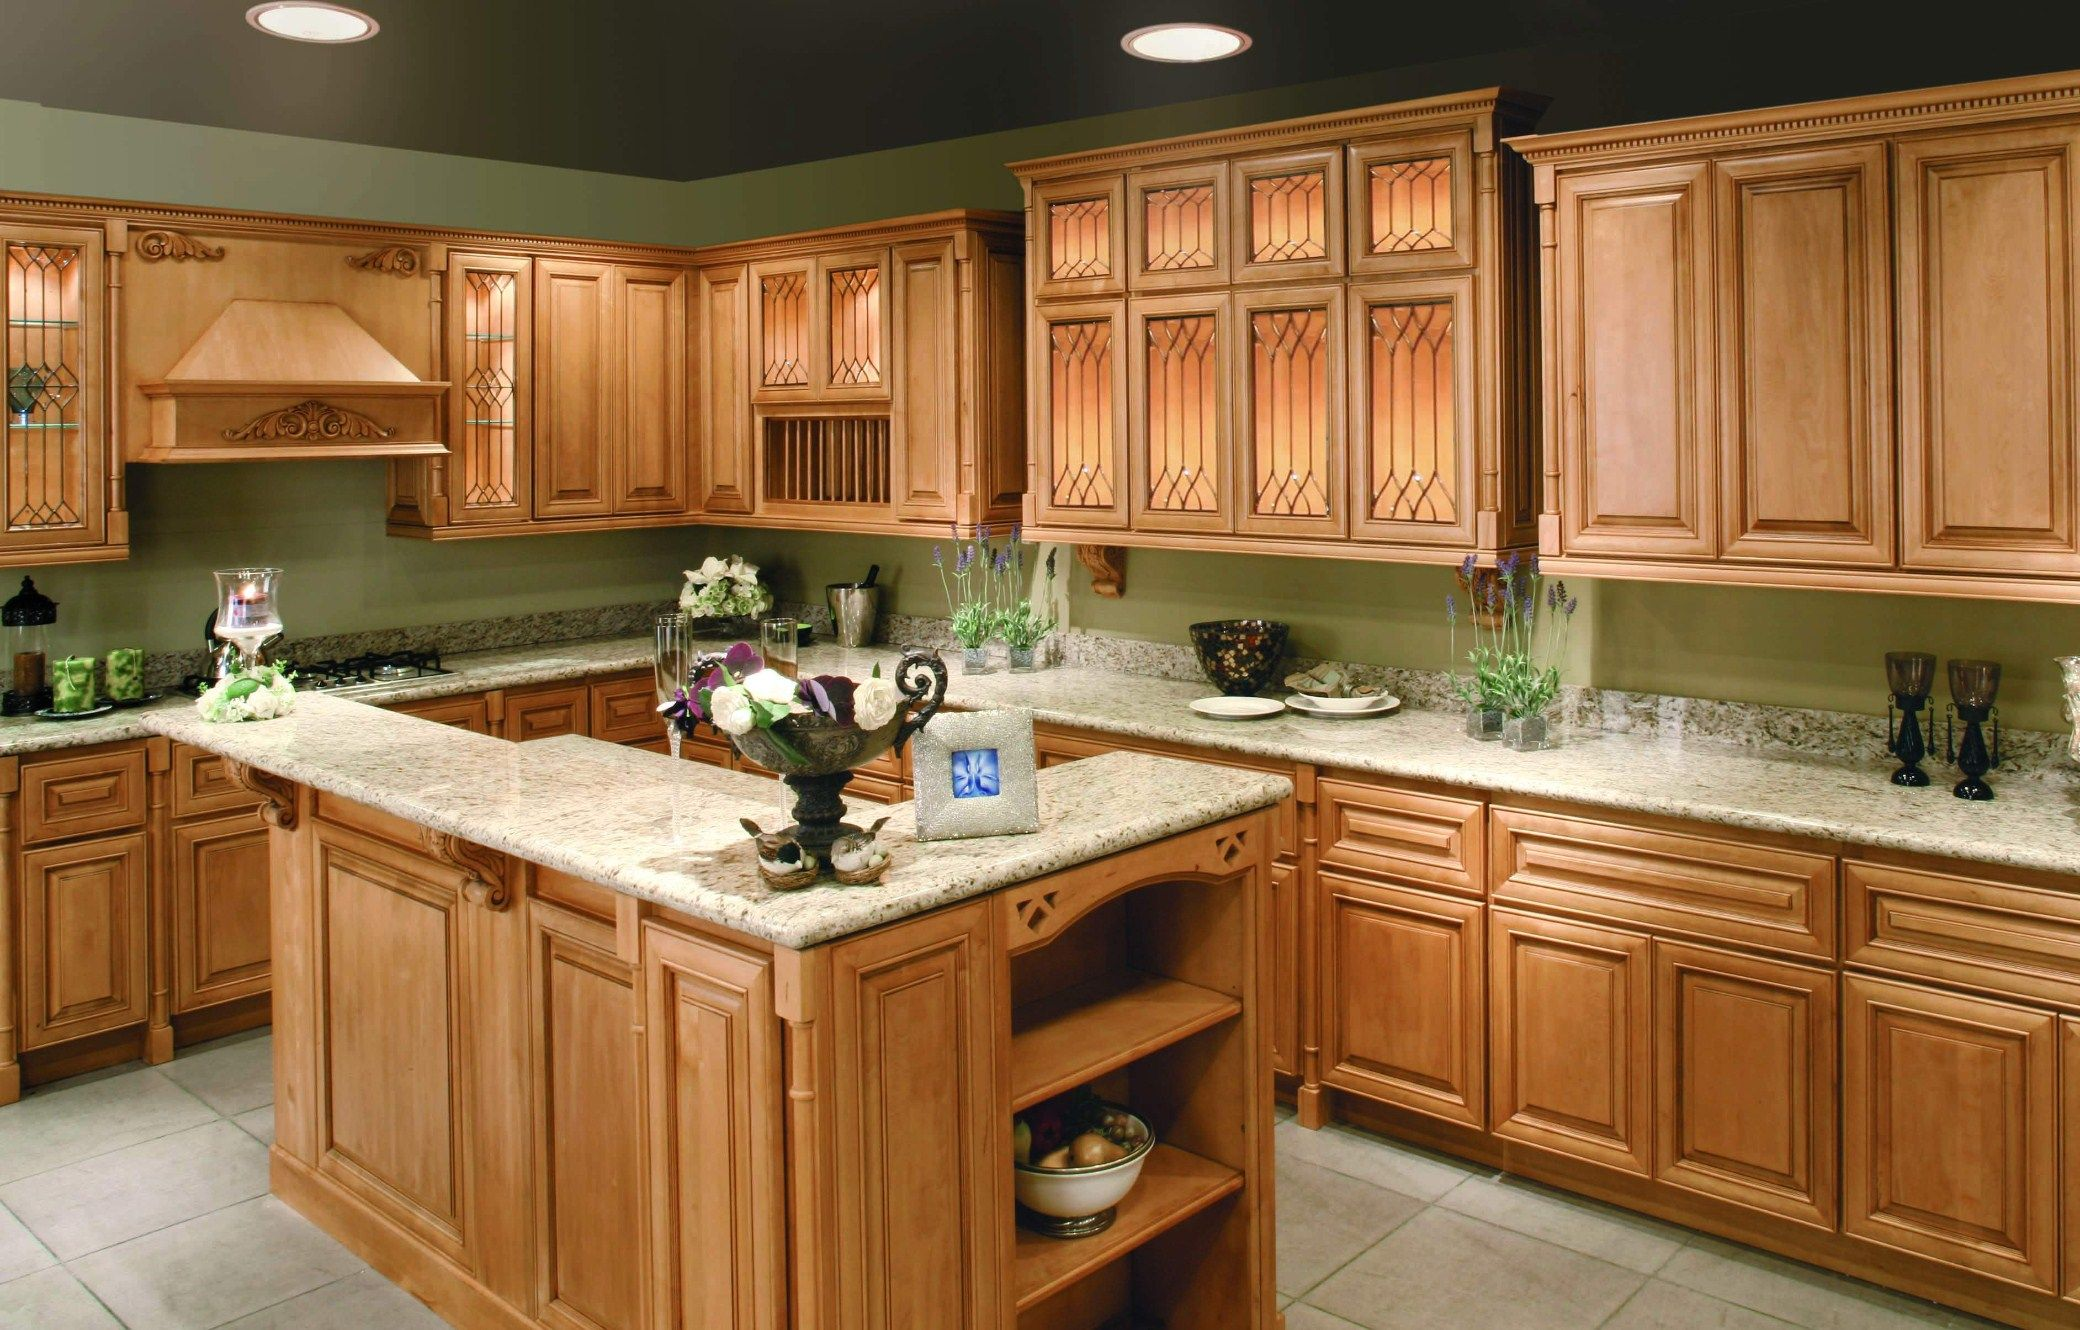 Kitchen Quartz Countertops With Oak Cabinets Cabinets With White